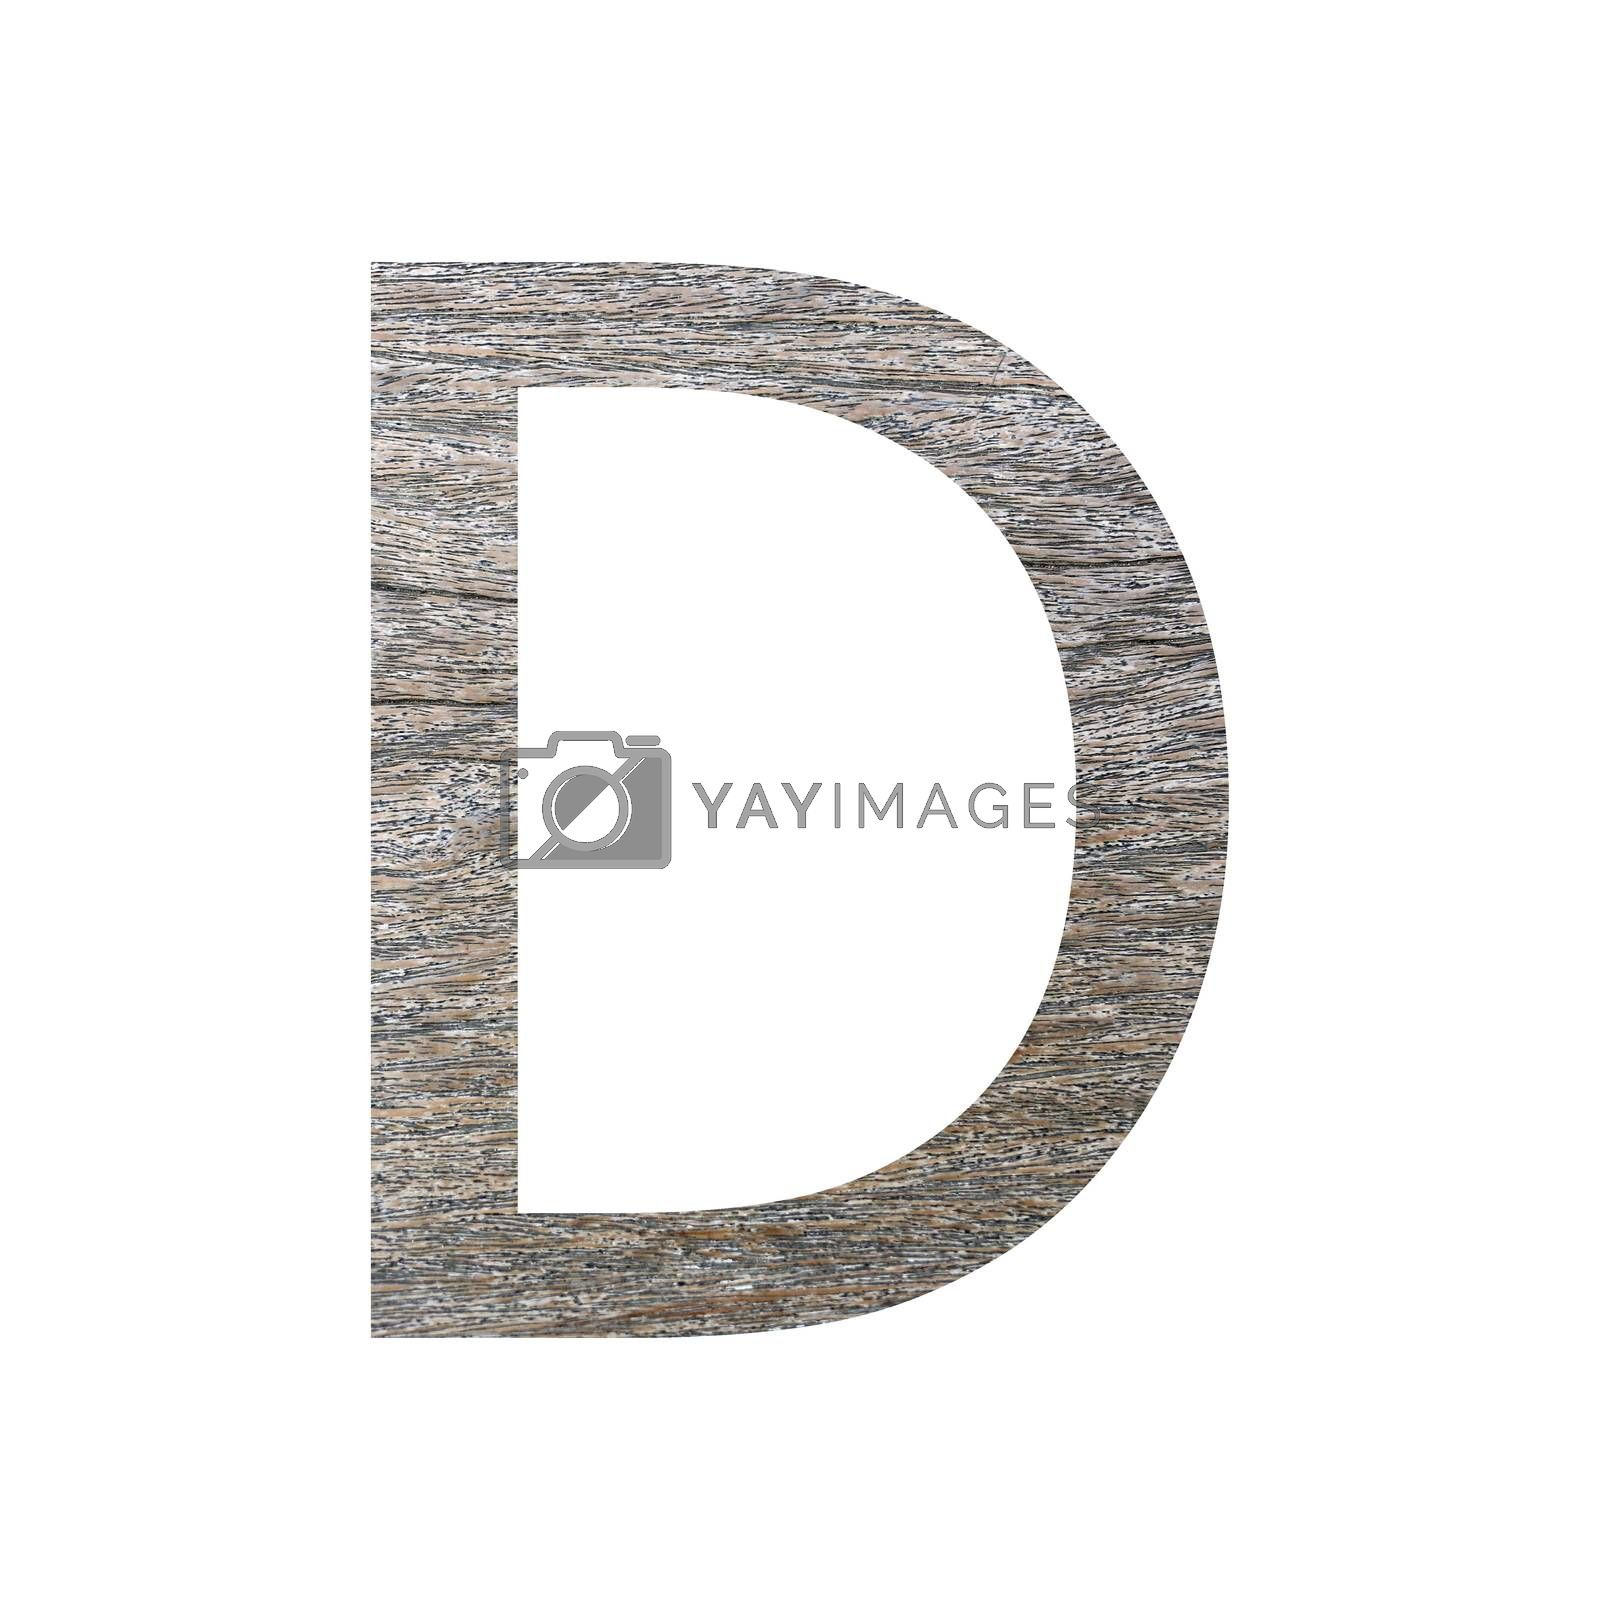 wooden font isolated on white background.